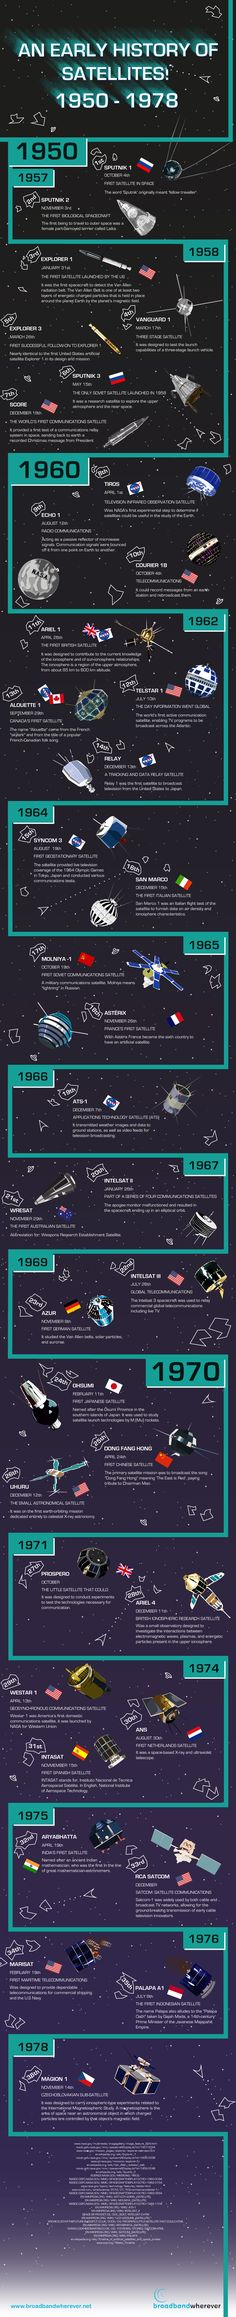 An Early History of Satellites   #infographic #Satellites  #Technology